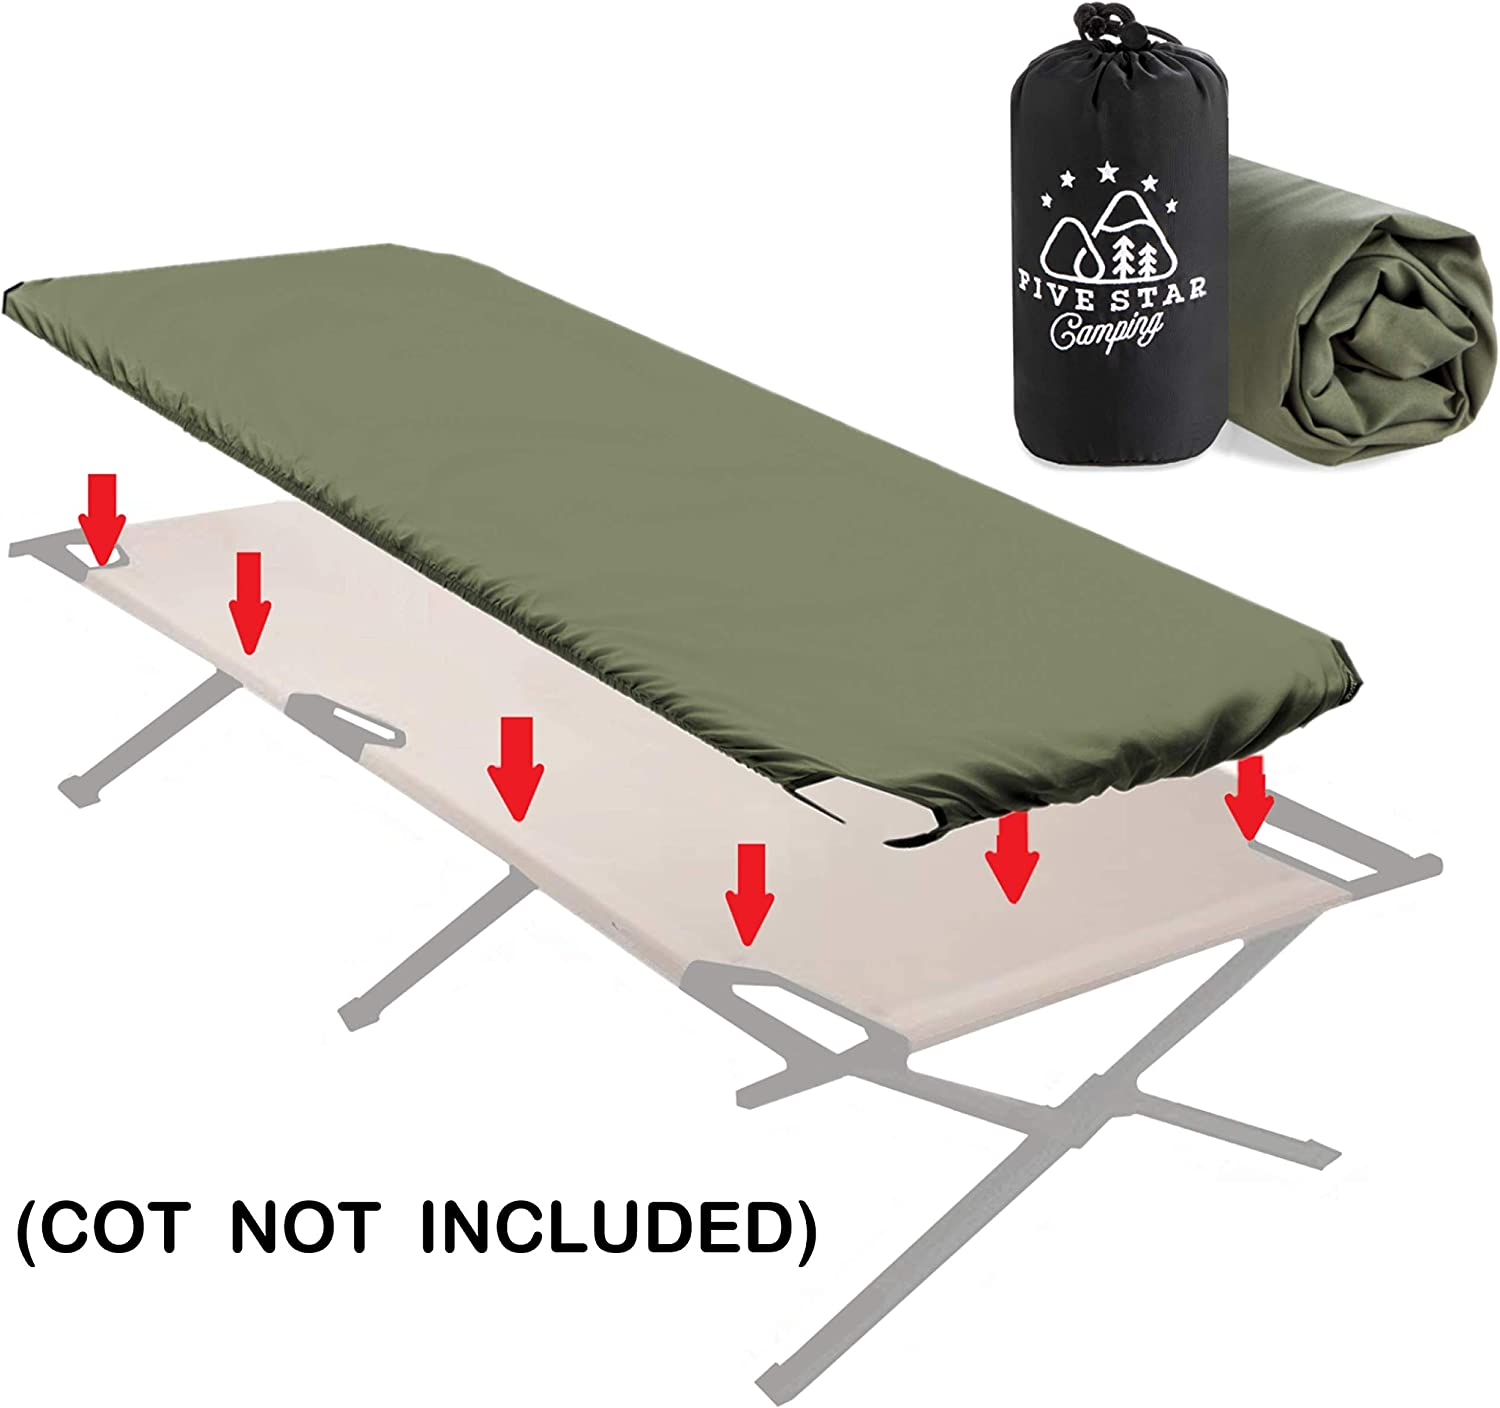 Fitted Camping Cot Sheet for Adult Sleeping Cots Military cots Travel cots and Folding Cots Keeps Your Sleeping Pad Secure! Great for Hunting Camping Bedding That fits Most Army cots